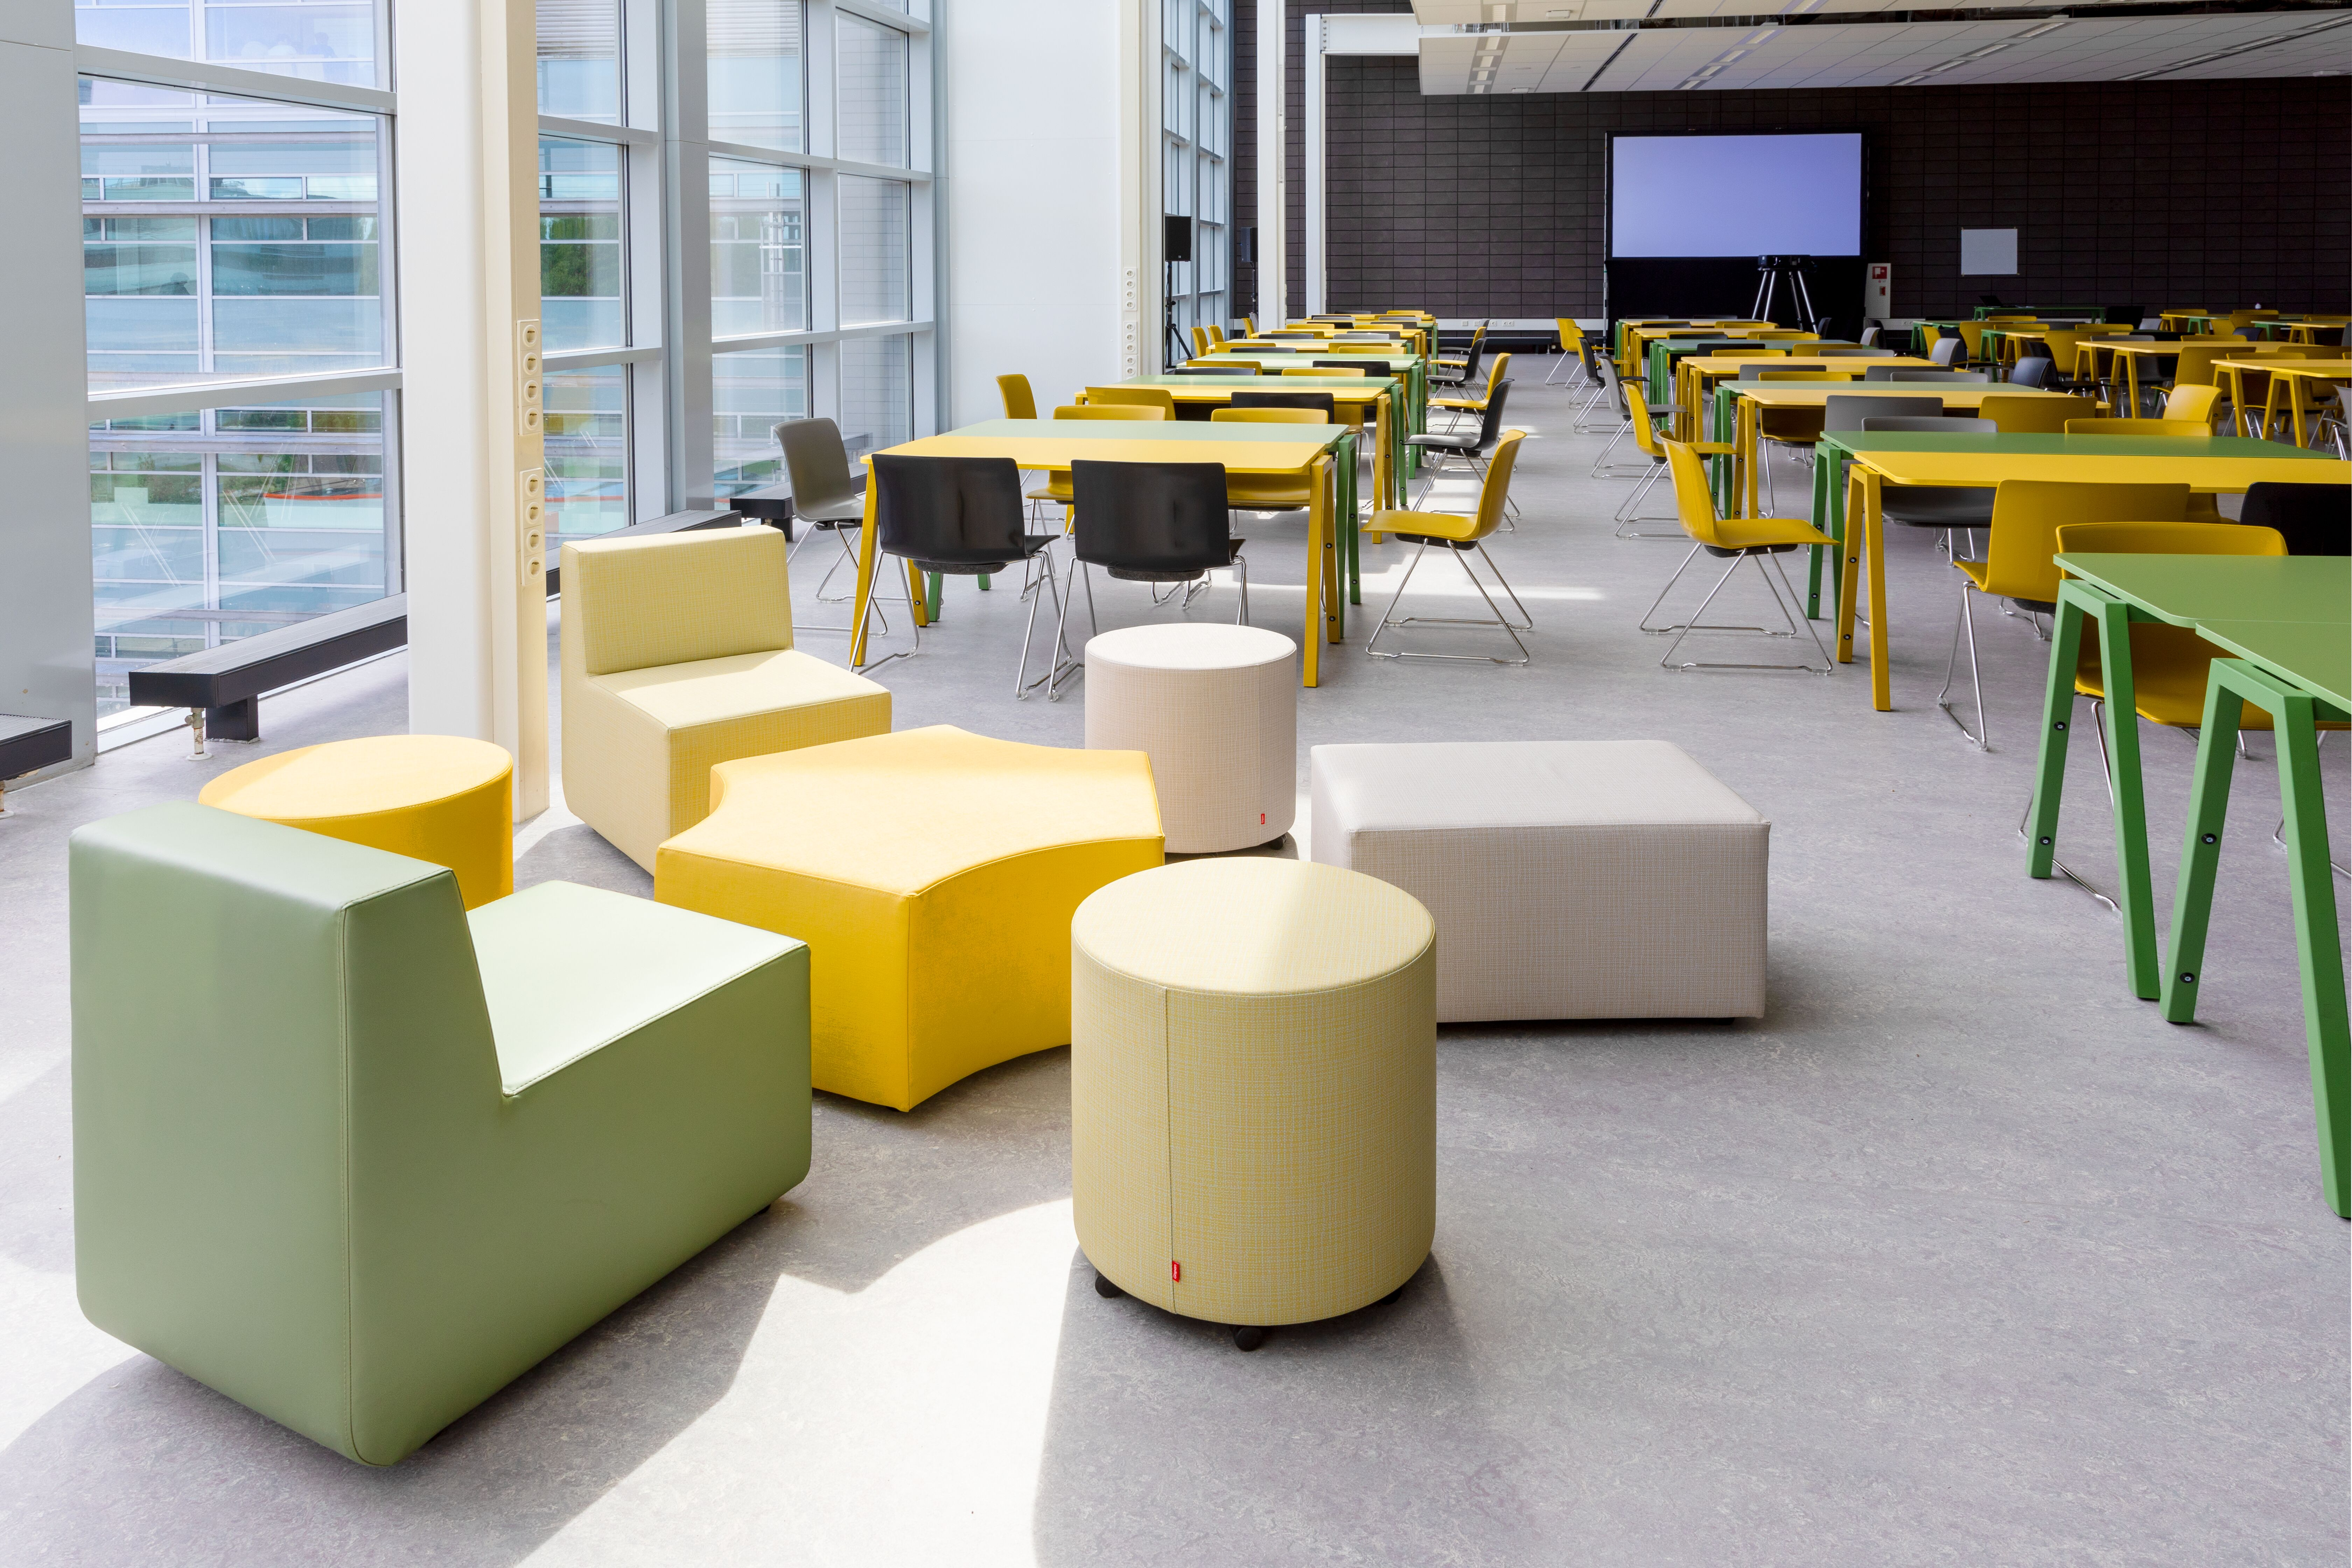 Gispen education project Fontys in Eindhoven 00A9949